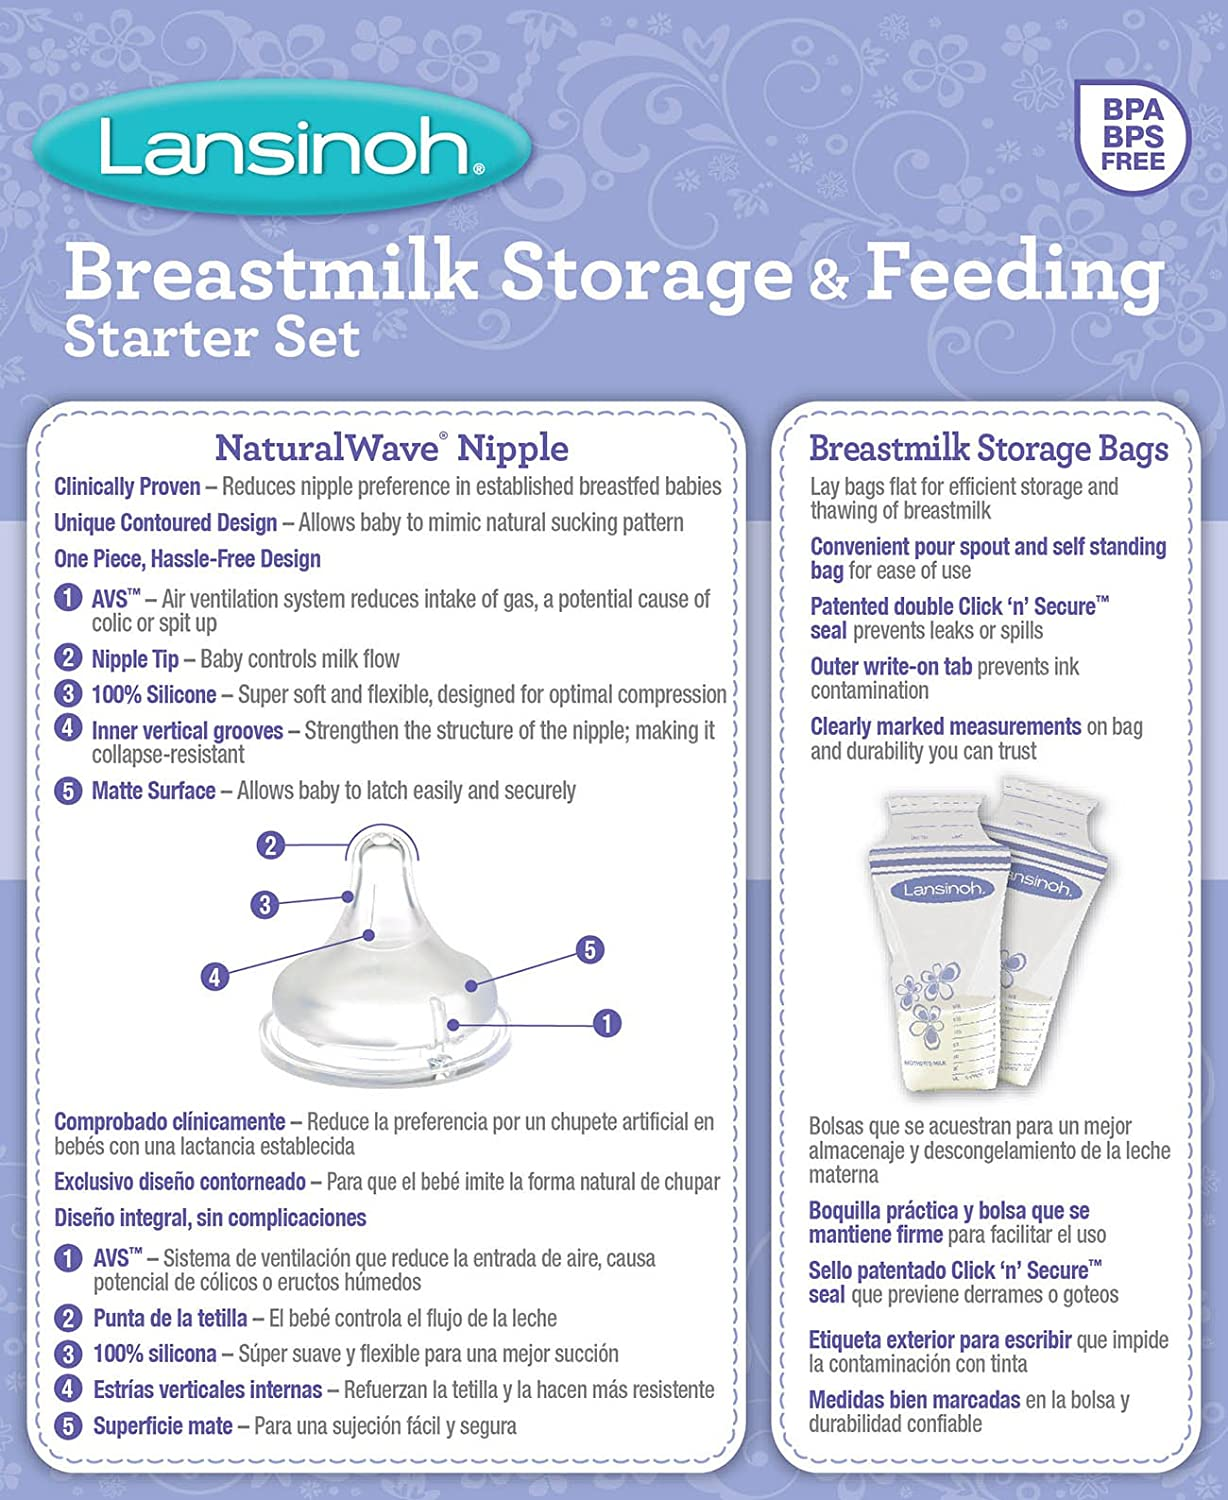 Lansinoh Breastmilk Storage & Feeding Set with 2-5 Ounce Bottles, 2-8 Ounce Bottles, 2 Slow Flow...